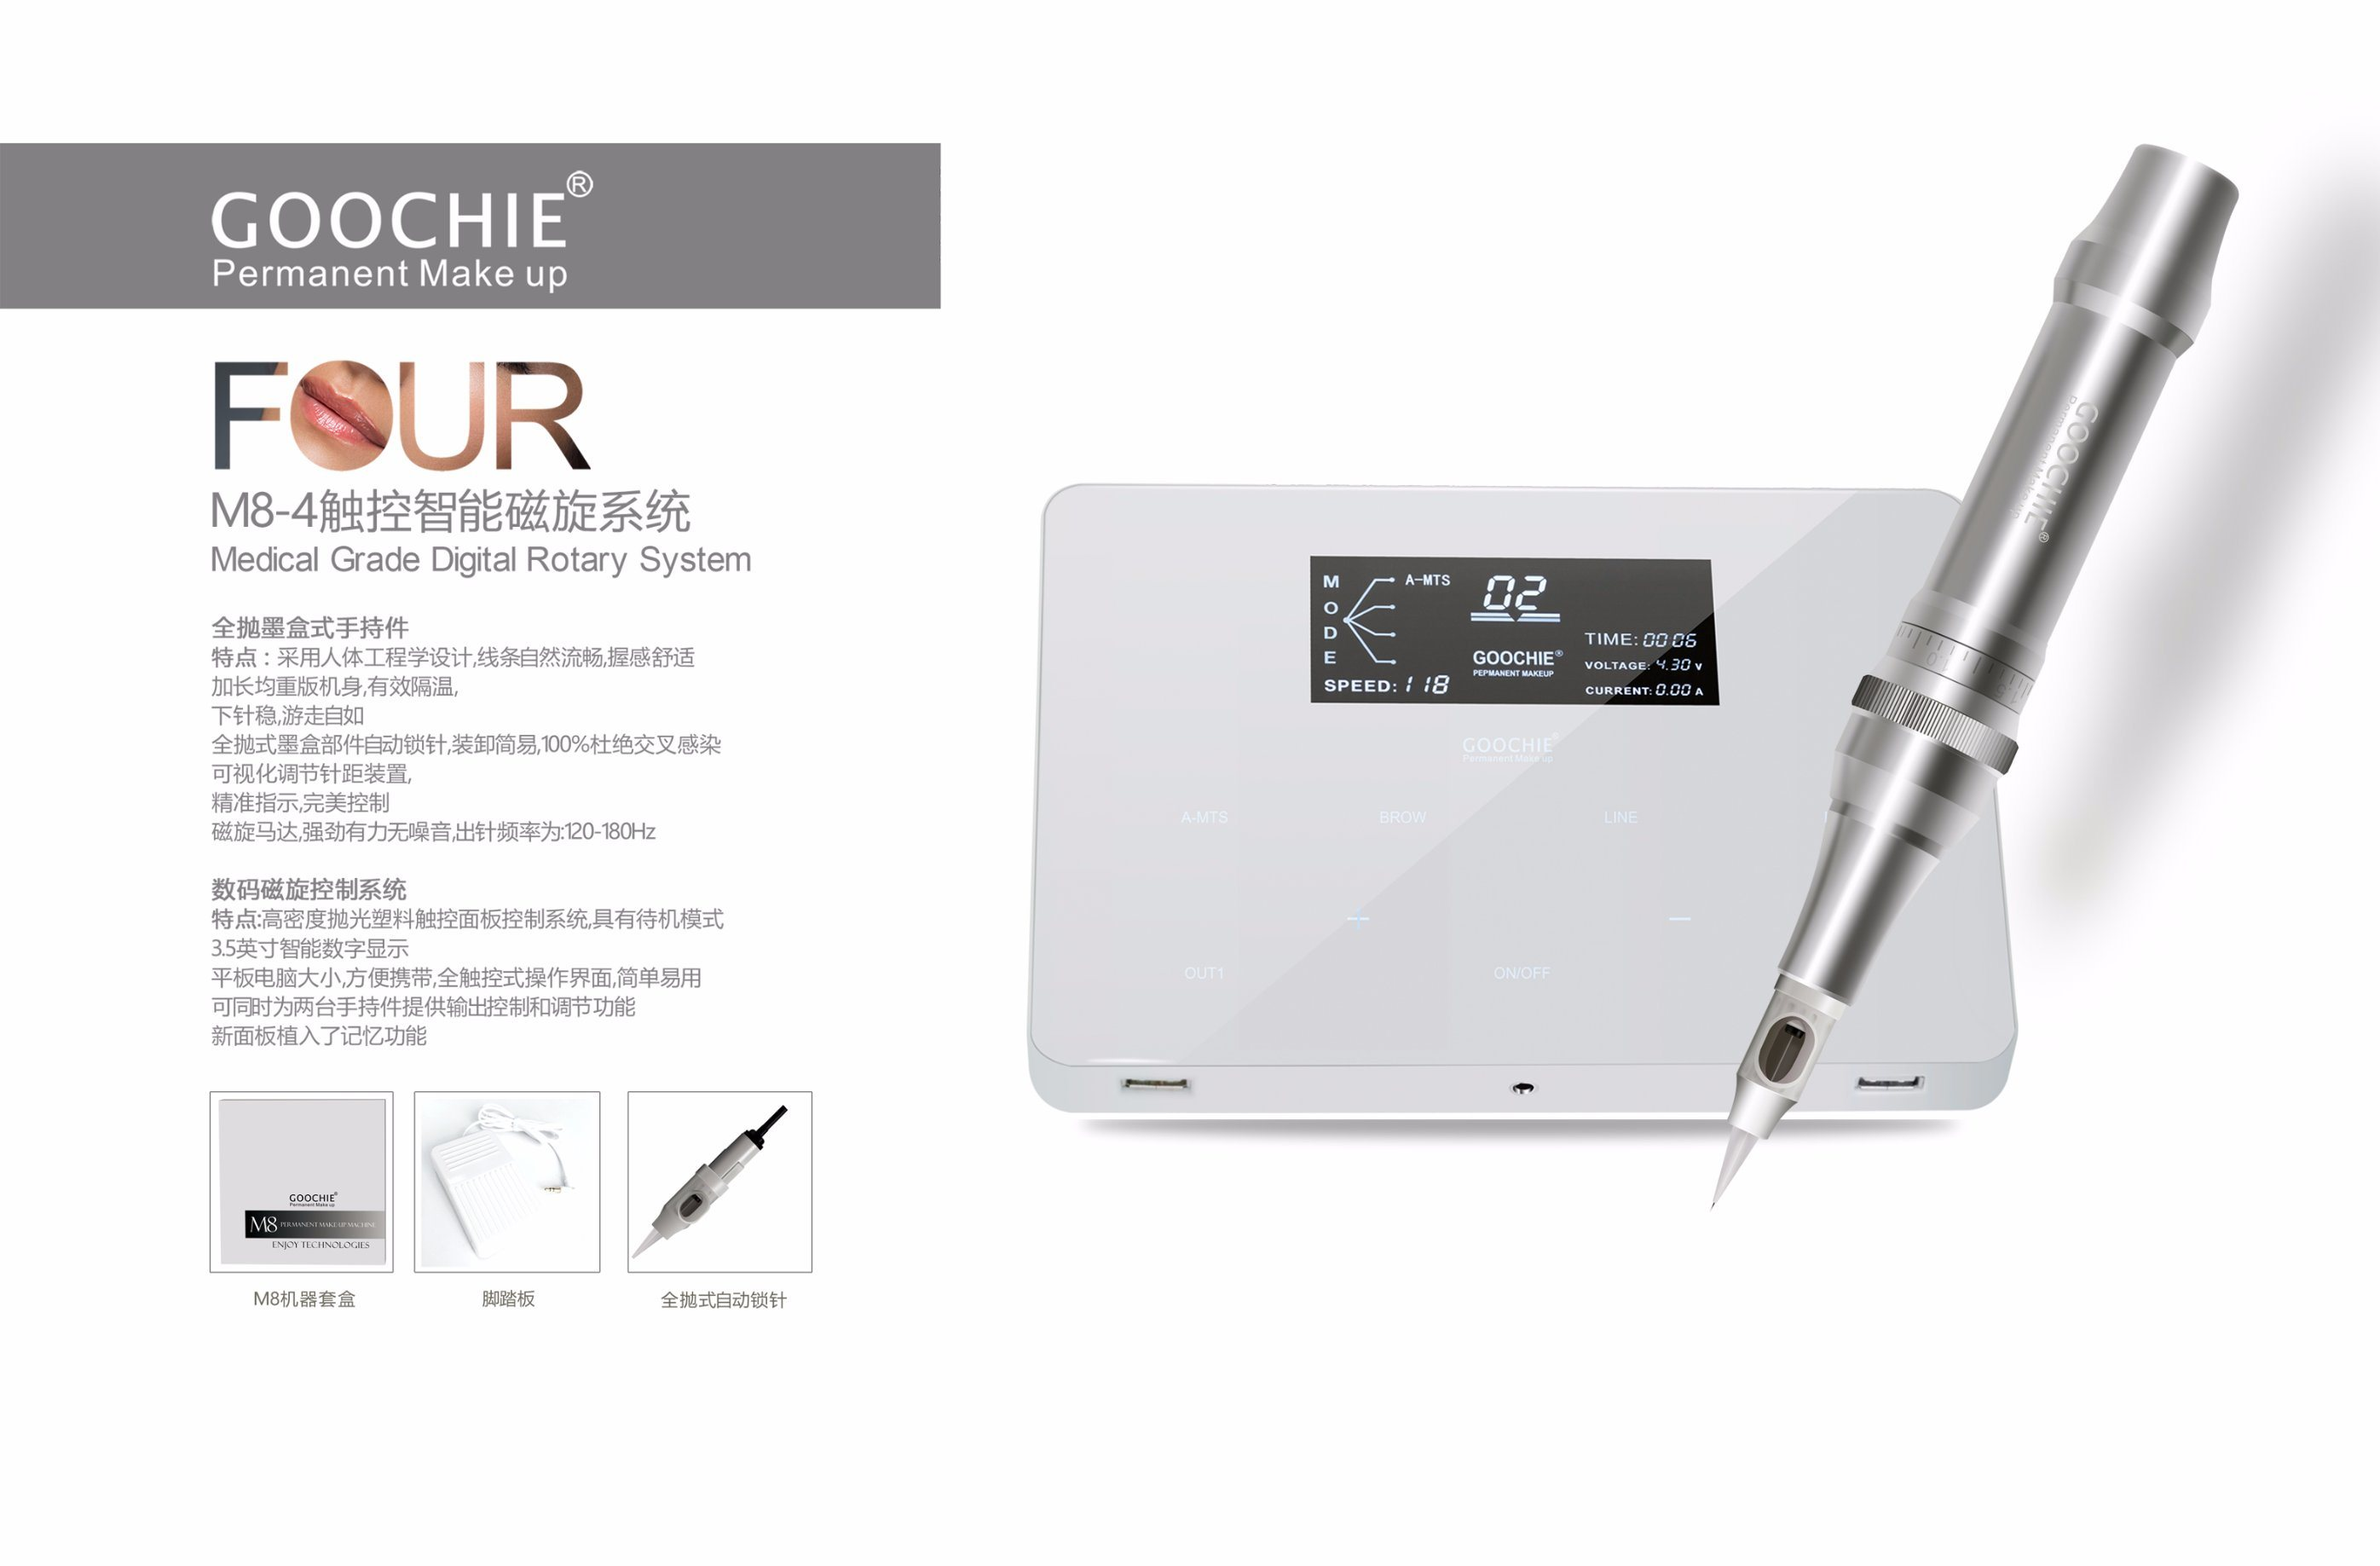 Goochie Permanent Makeup Digital Machine (M8IV NEWEST)